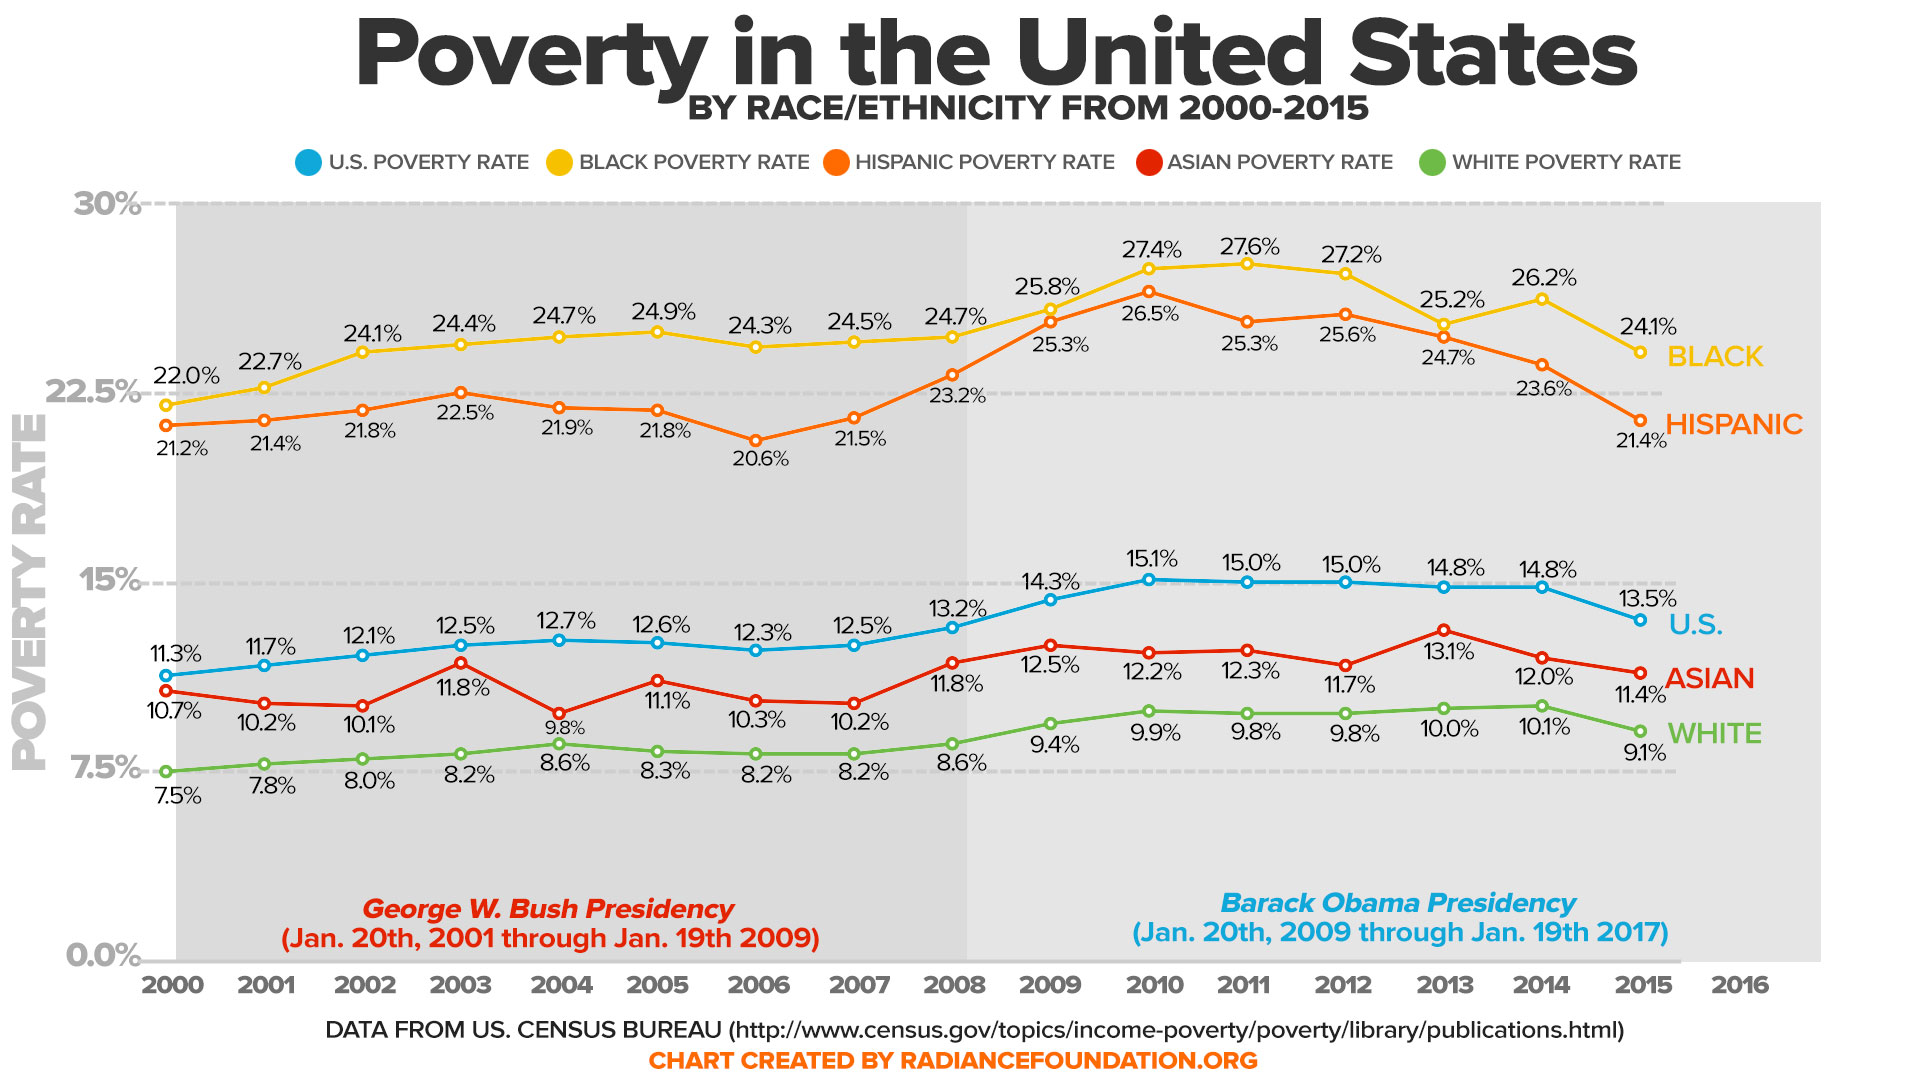 Poverty in the United States by Race/Ethnicity